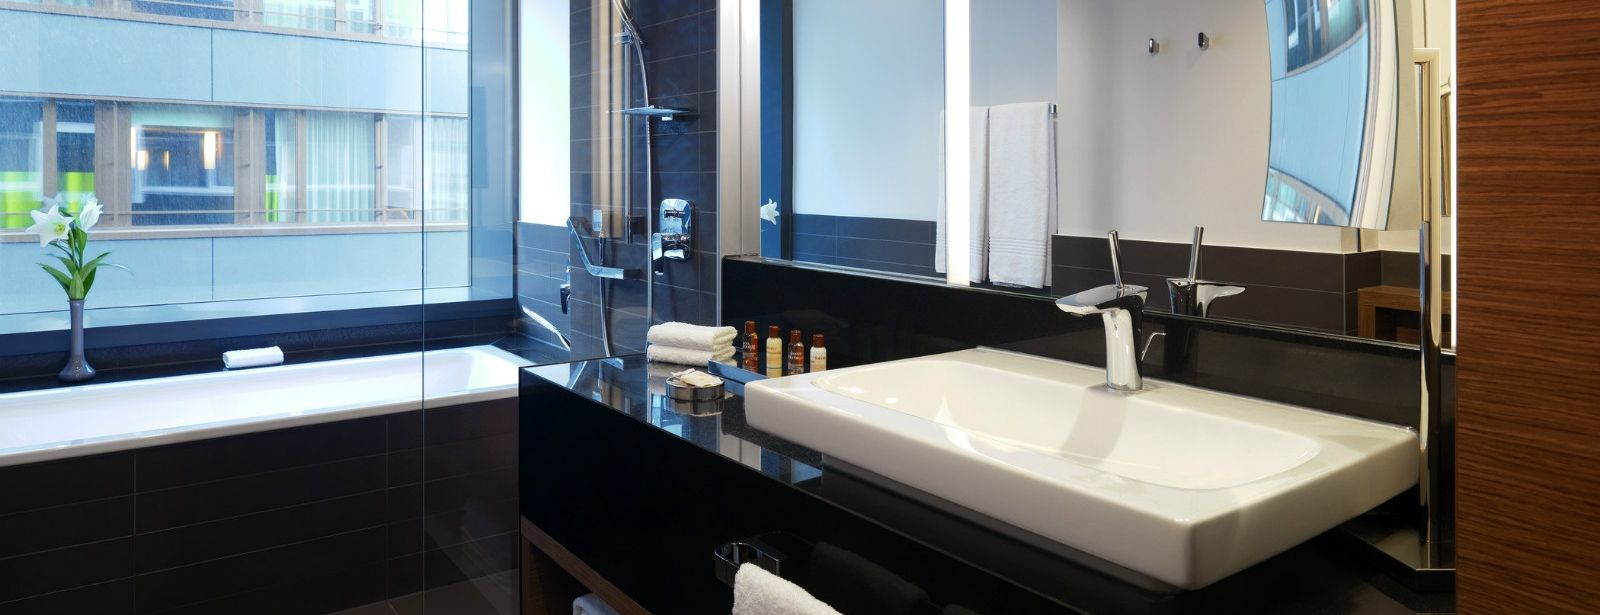 3732-Sheraton-Zurich-Hotel-Bathroom-Junior-Suite-1600x900